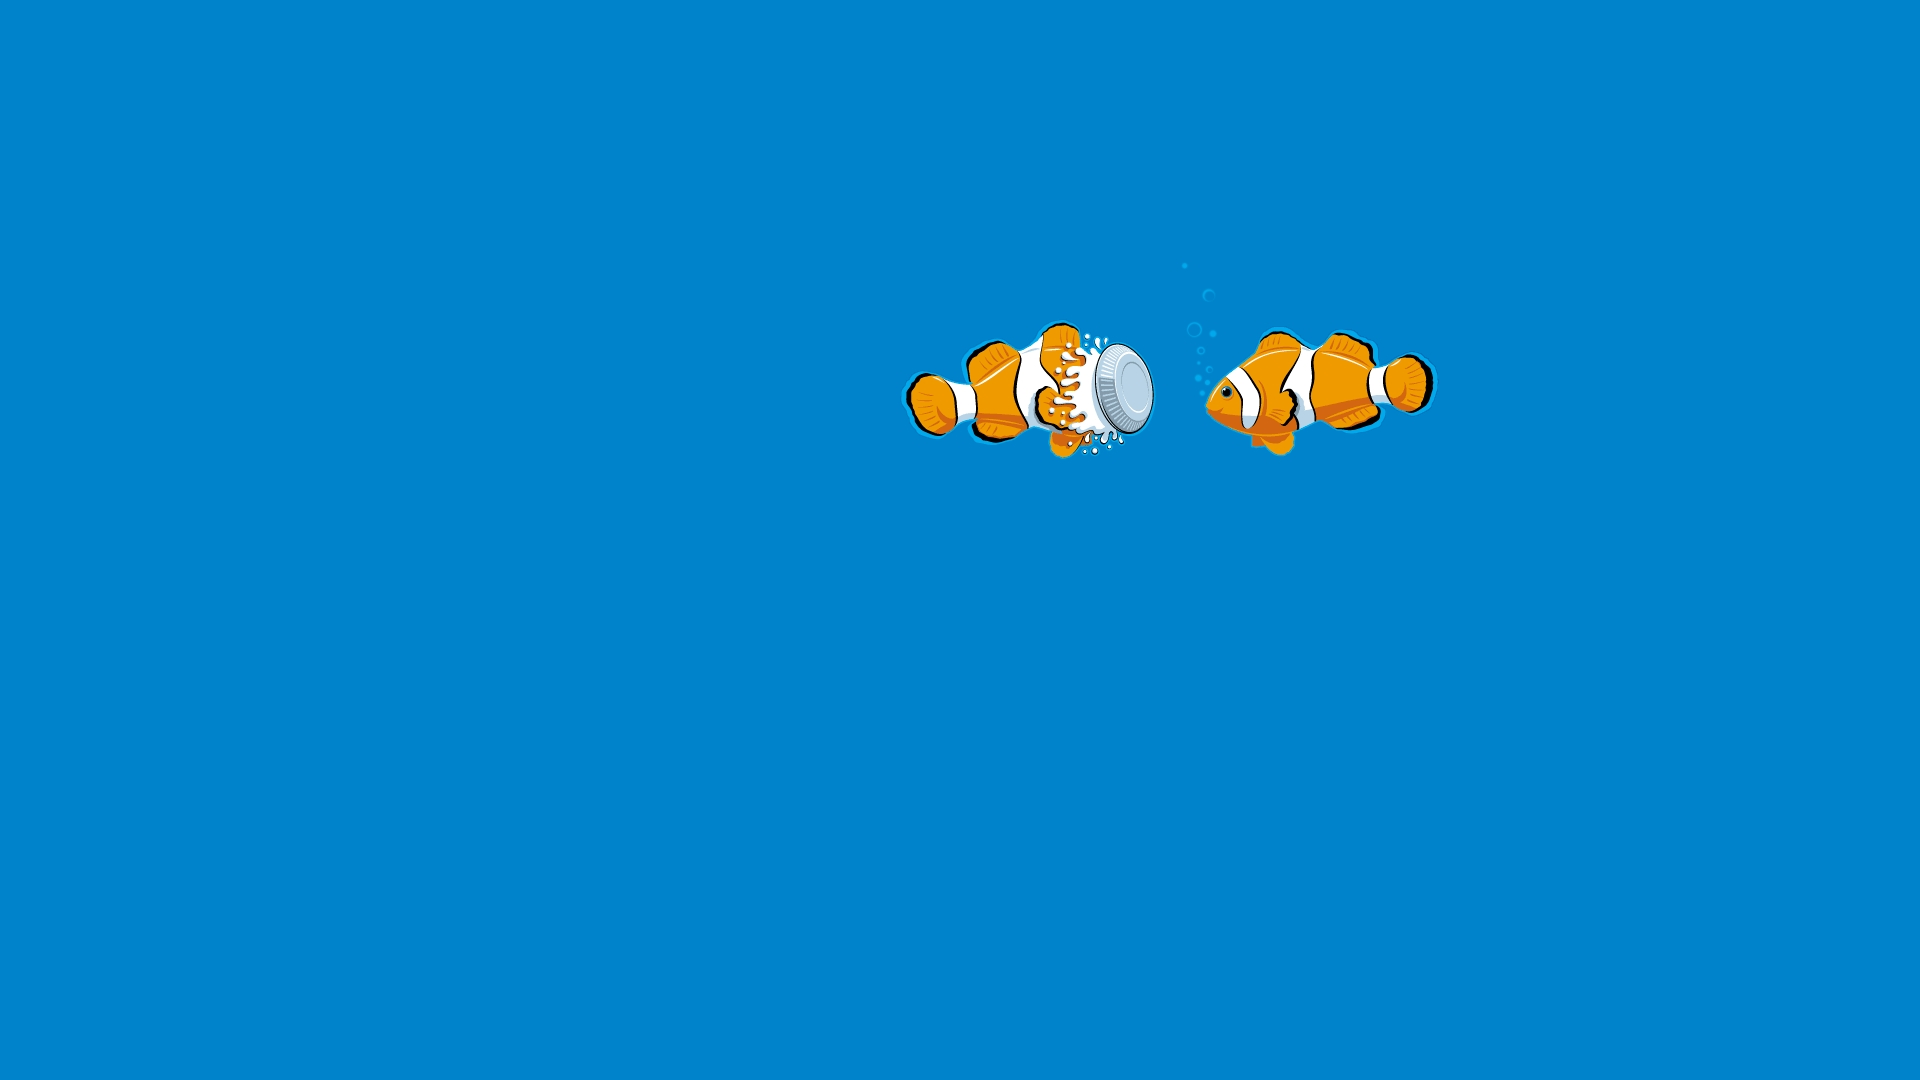 clownfish 16x9 desktop 1920x1080 wallpaper 326765jpg 1920x1080